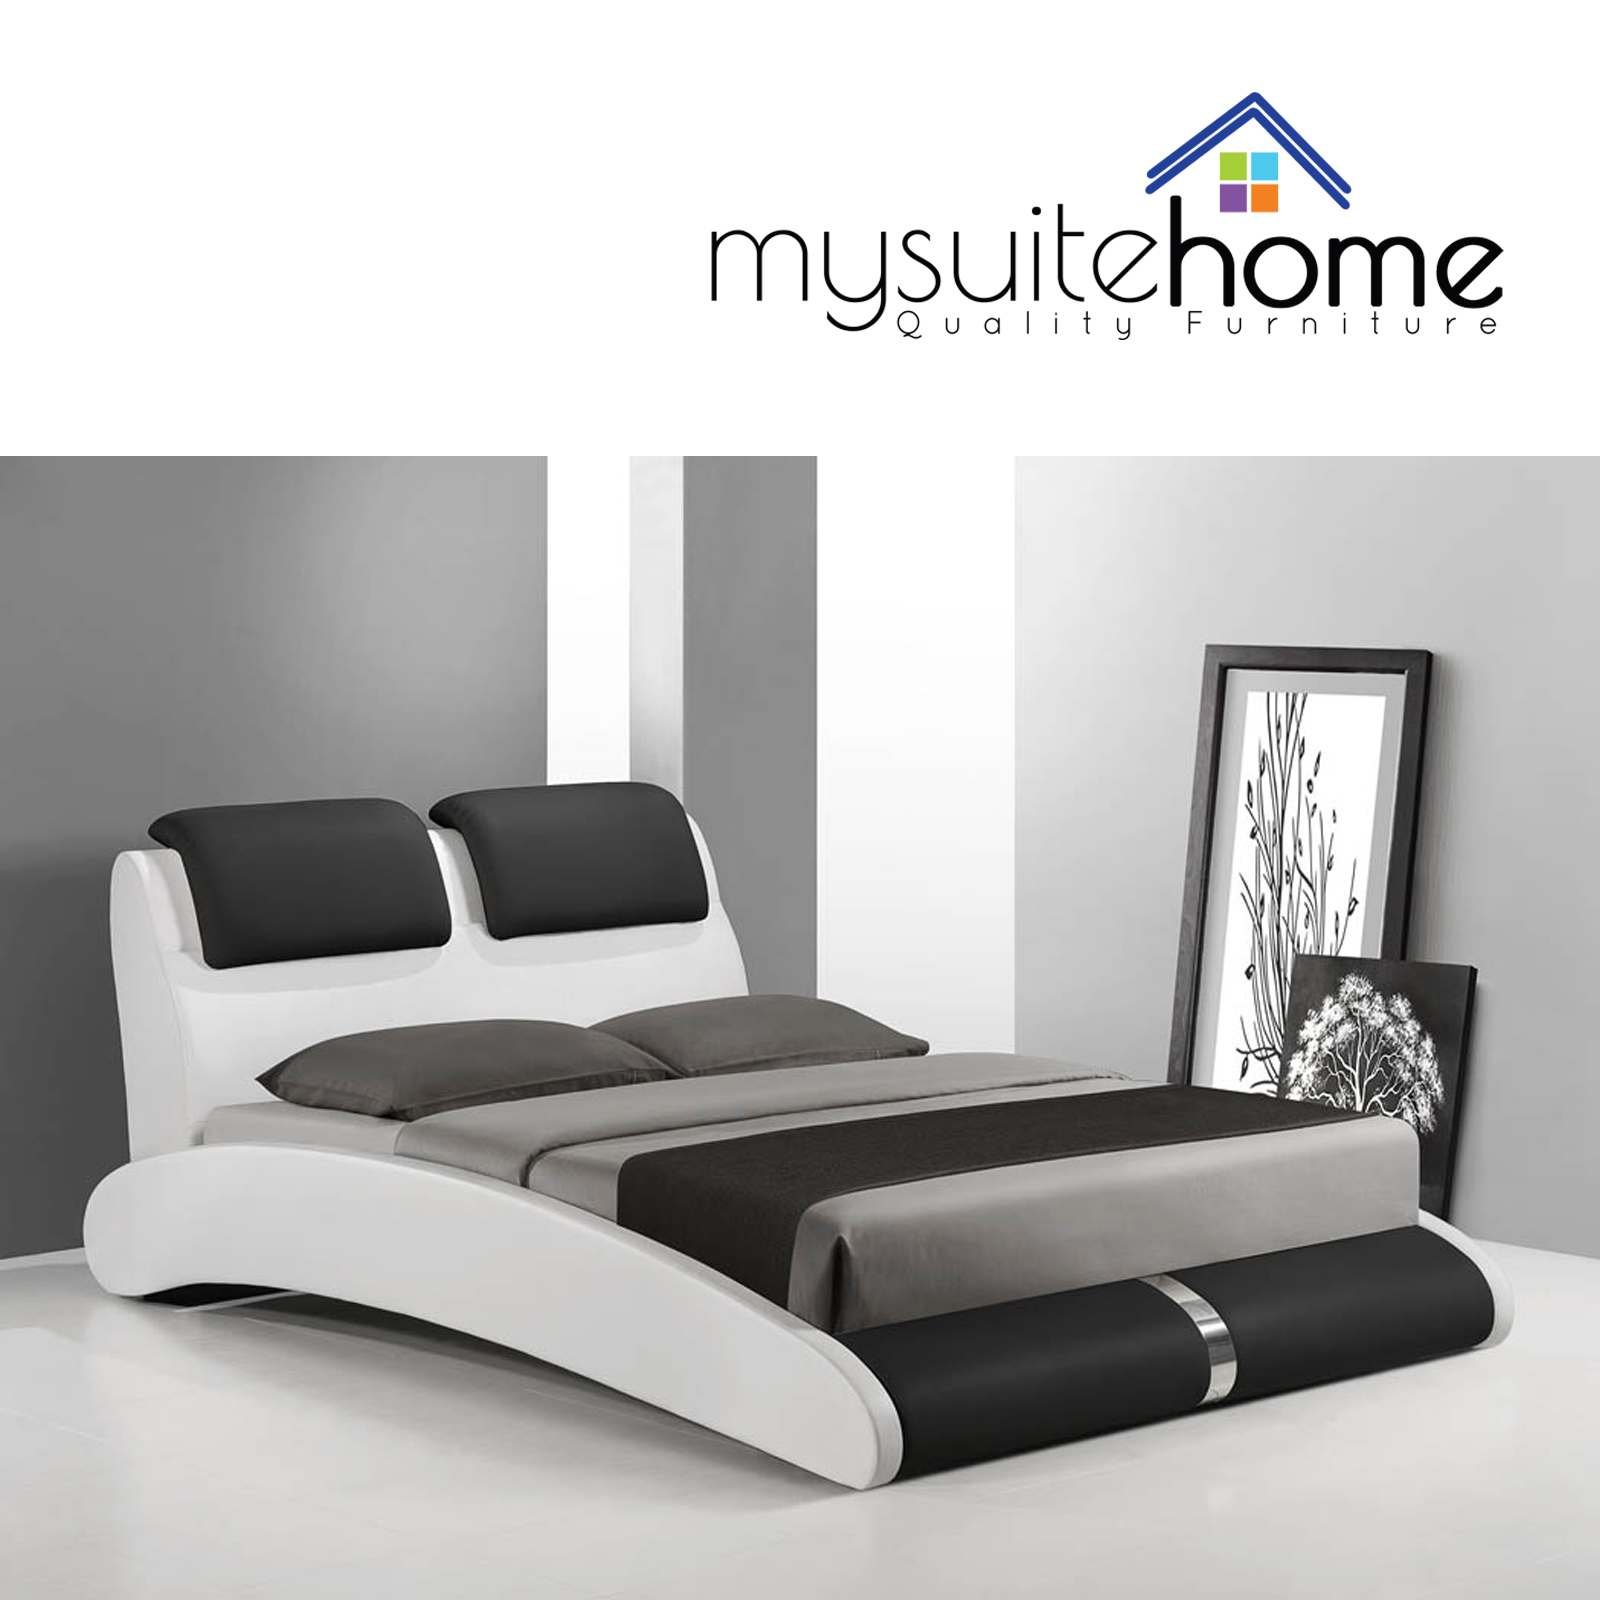 marco brand new modern matt white and black queen size pu leather bed frame ebay. Black Bedroom Furniture Sets. Home Design Ideas